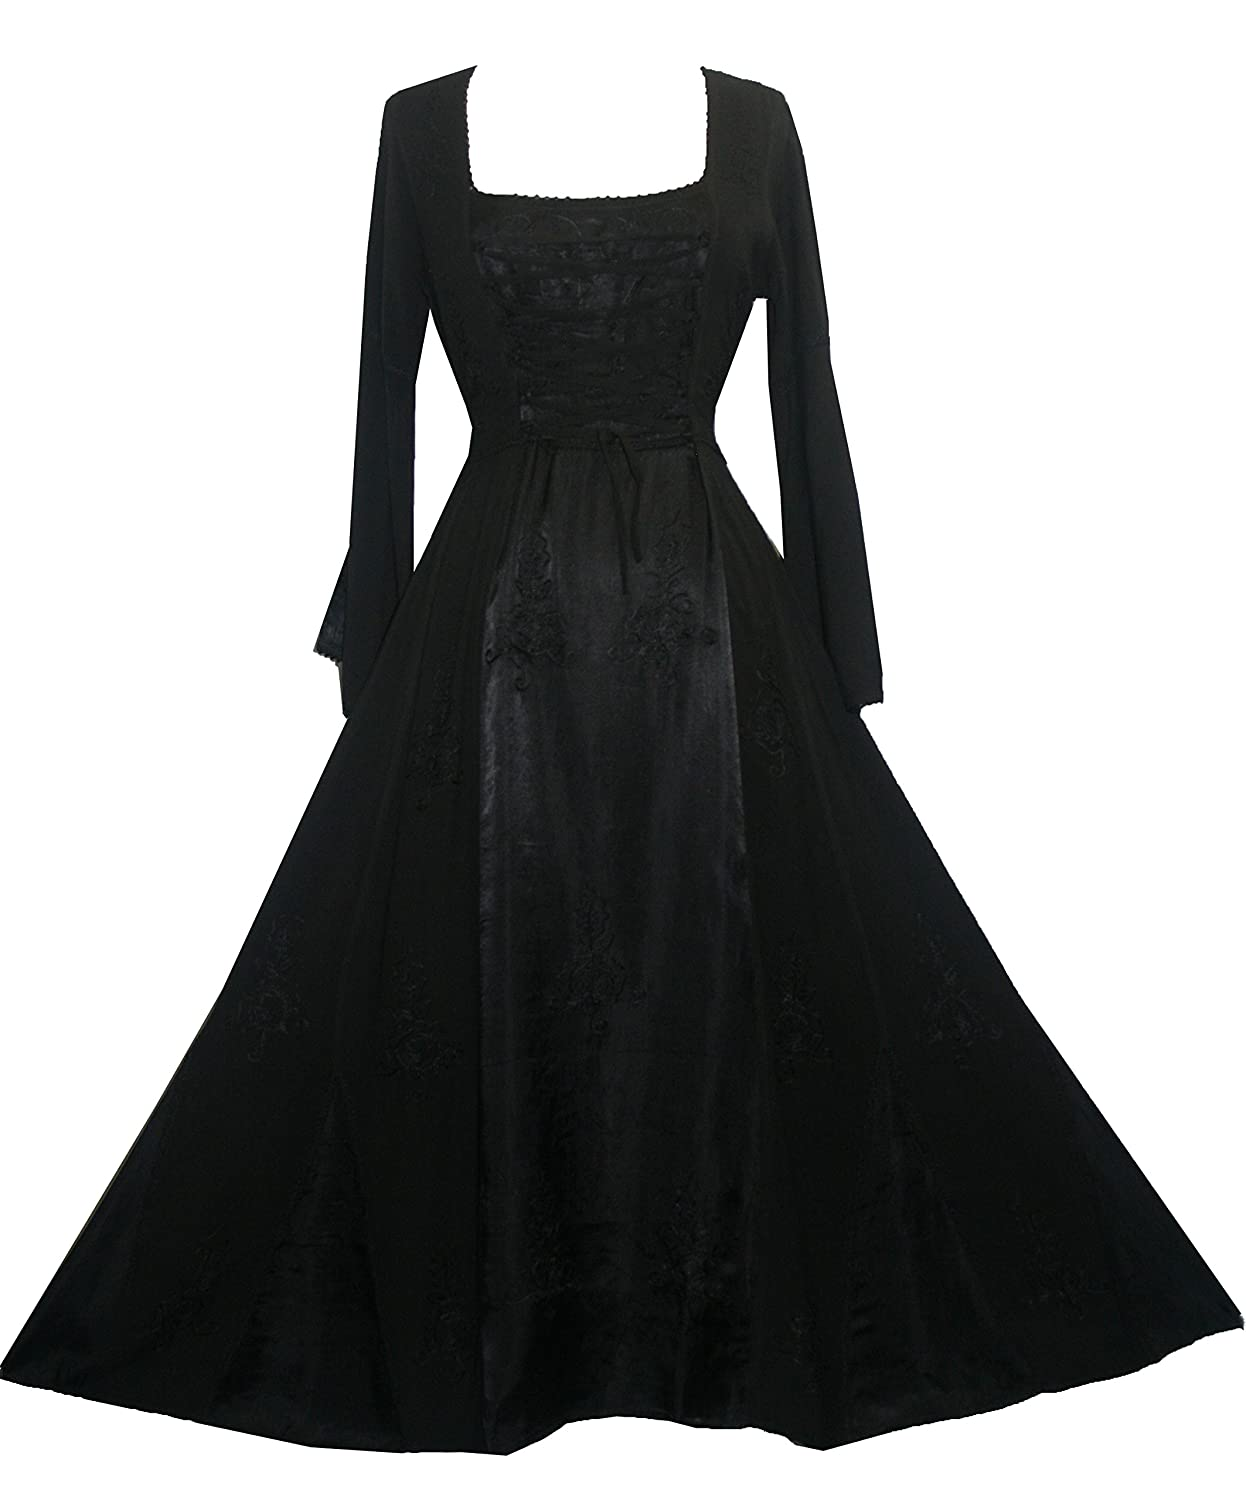 ac2081fcd8 Gorgeous renaissance design long embroidered dress with satin flare. Fabric  is 100% Rayon Viscose. It has corset ties front and back to curve your body  for ...